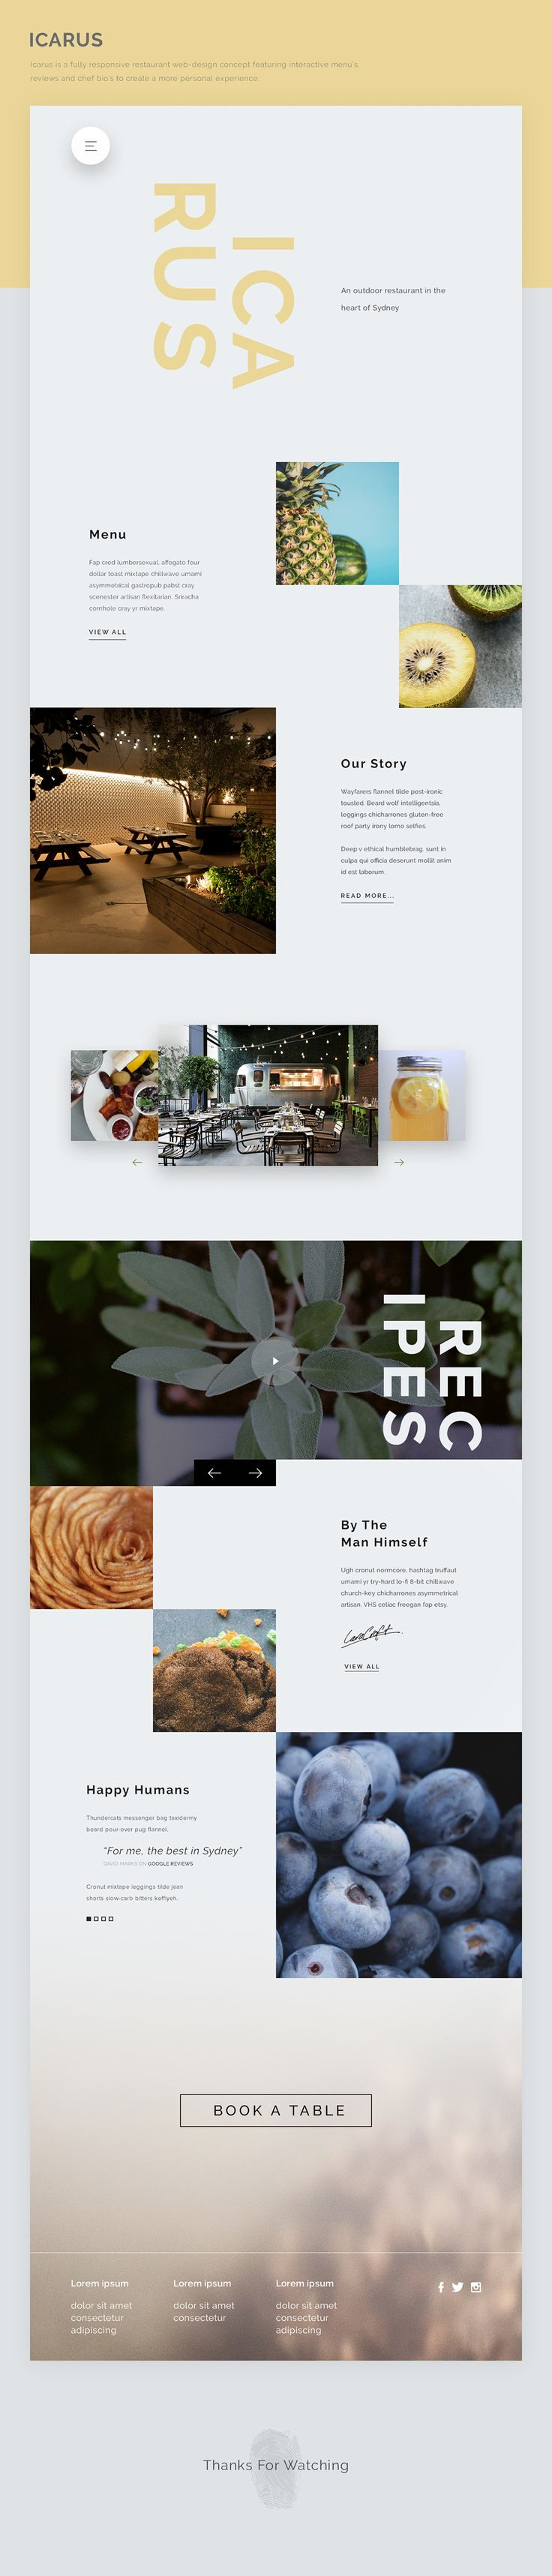 Icarus is a fully responsive restaurant web-design concept featuring interactive menu's, reviews and chef bio's to create a more personal experience.